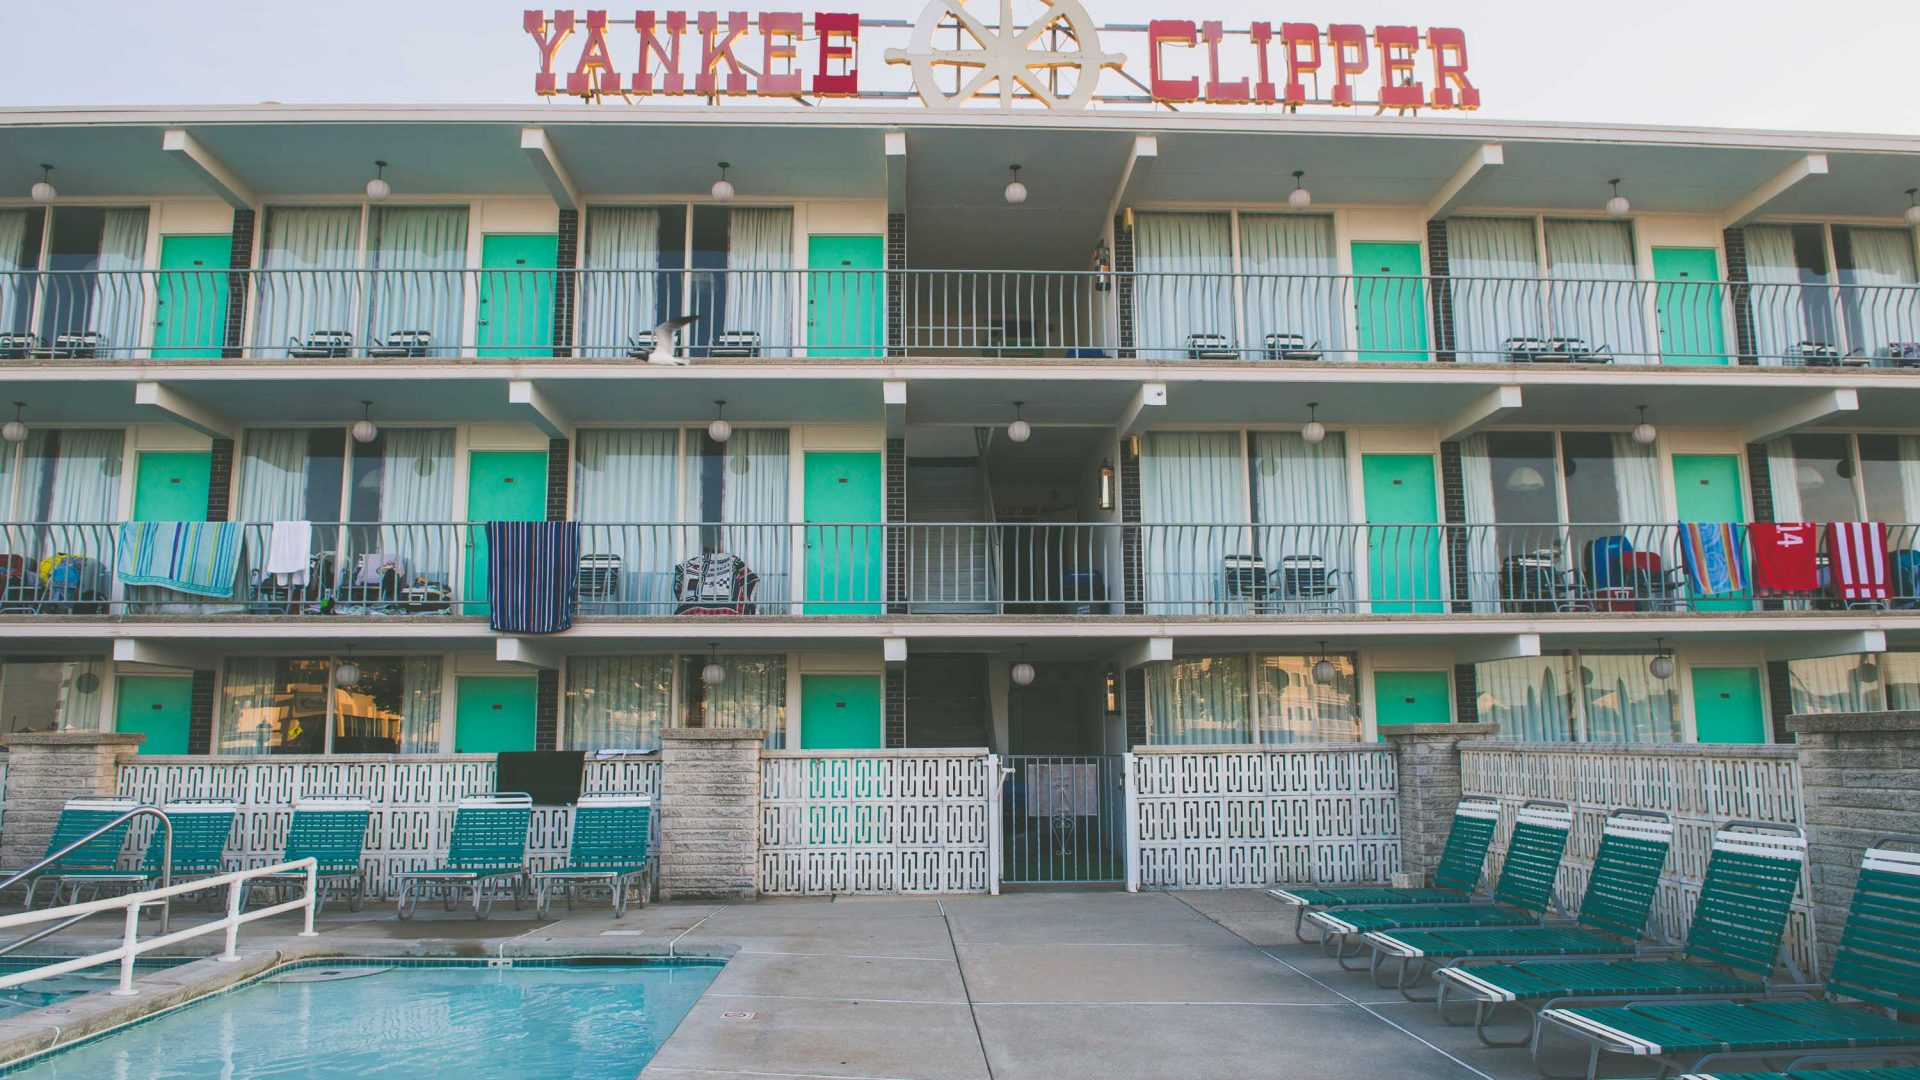 Yankee Clipper, one of the motels in Wildwood, New Jersey.